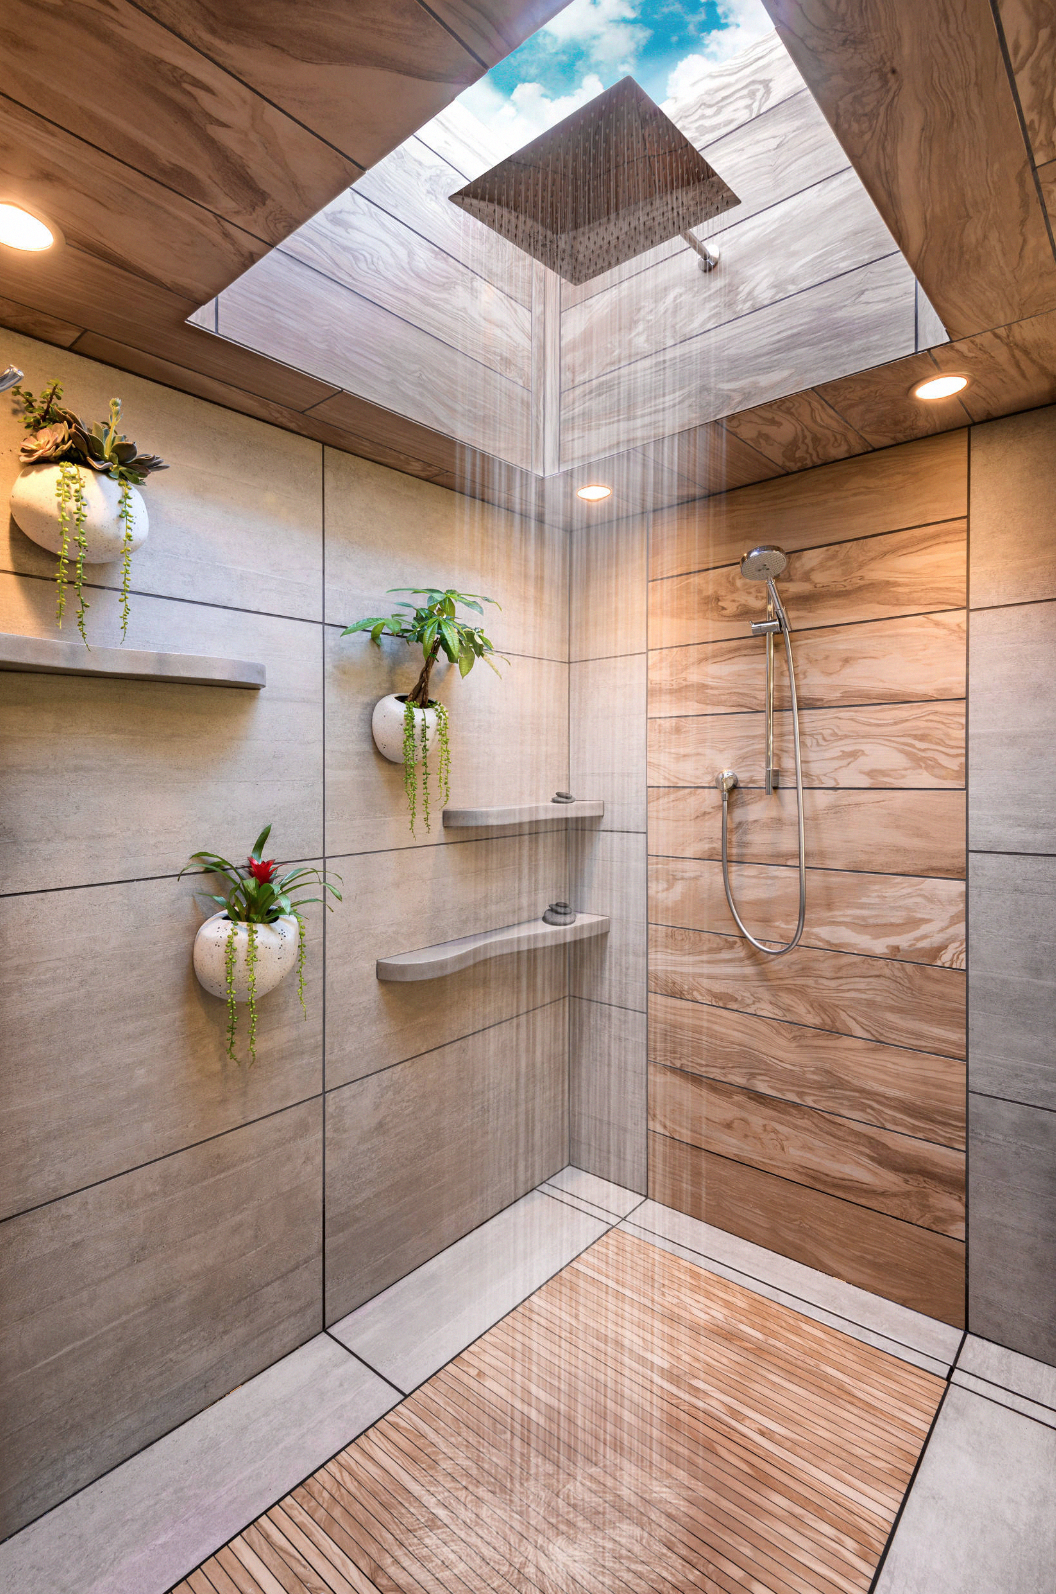 Do You Know About The Trend For Bathroom Plants This Quick Fix For Bathroom Bathroo Diy Bathroom Design Modern Bathroom Design Bathroom Interior Design